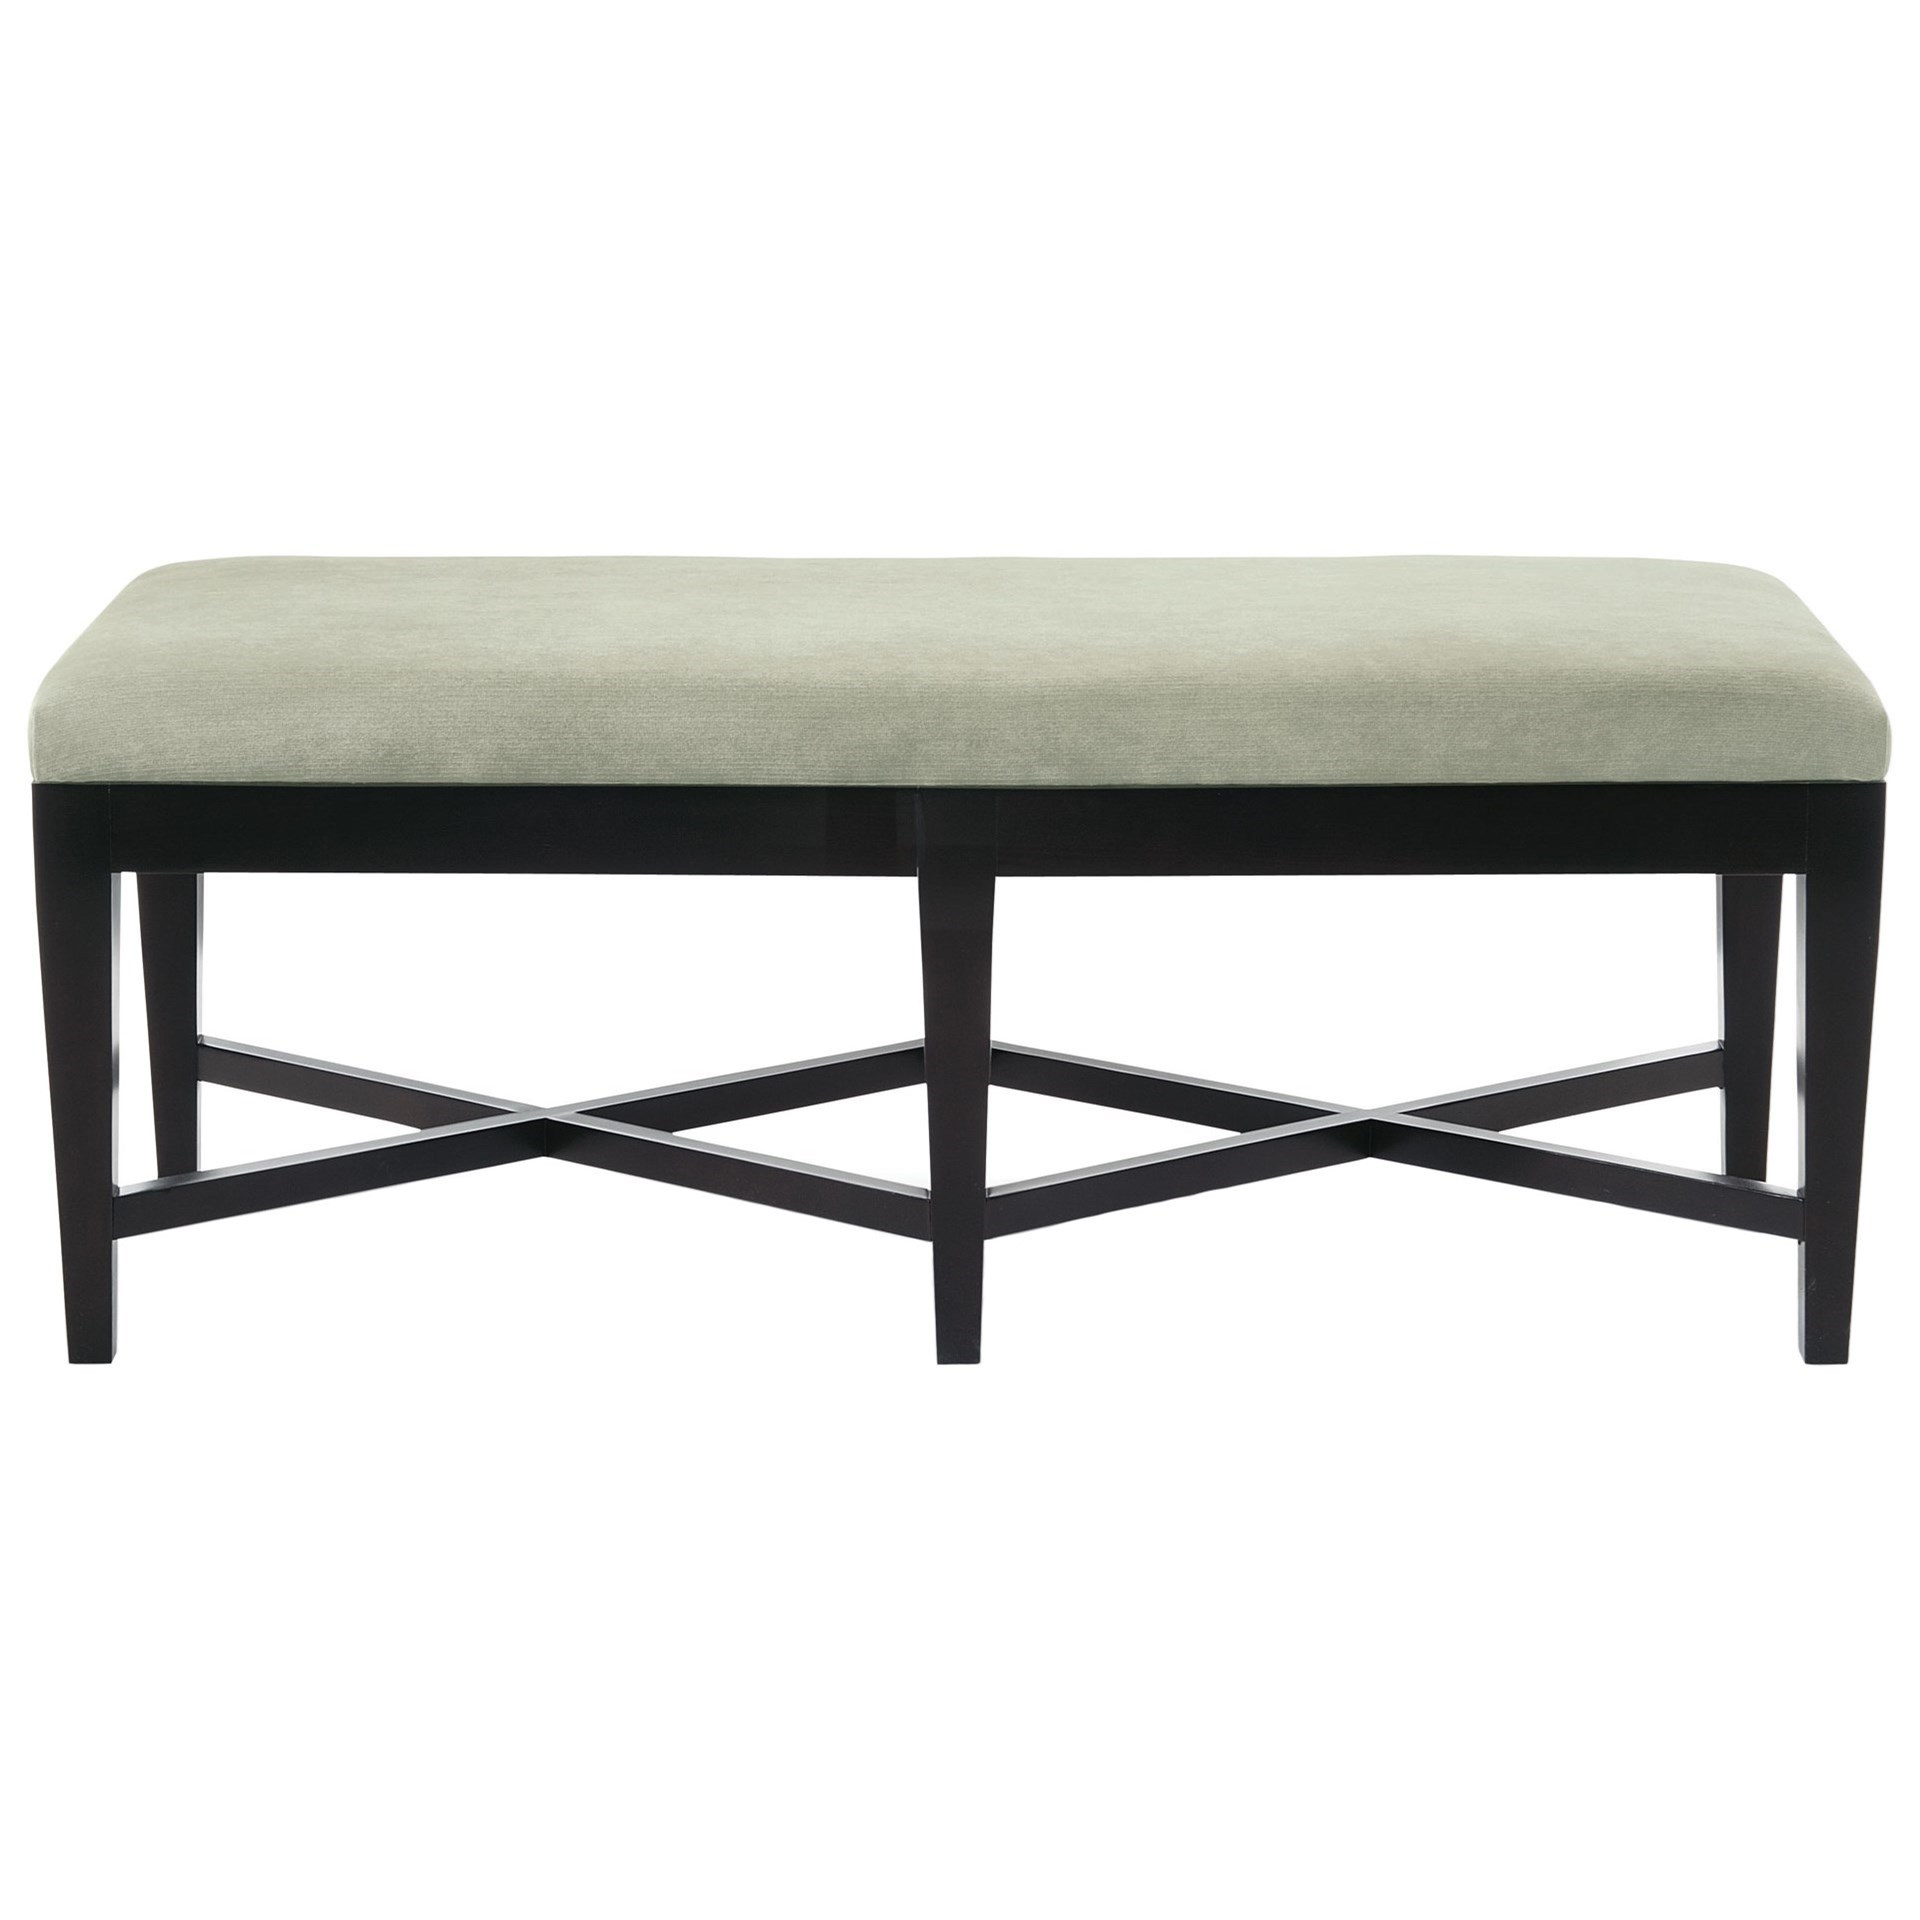 Interiors - Accents Leather Kendall Bench by Bernhardt at Baer's Furniture